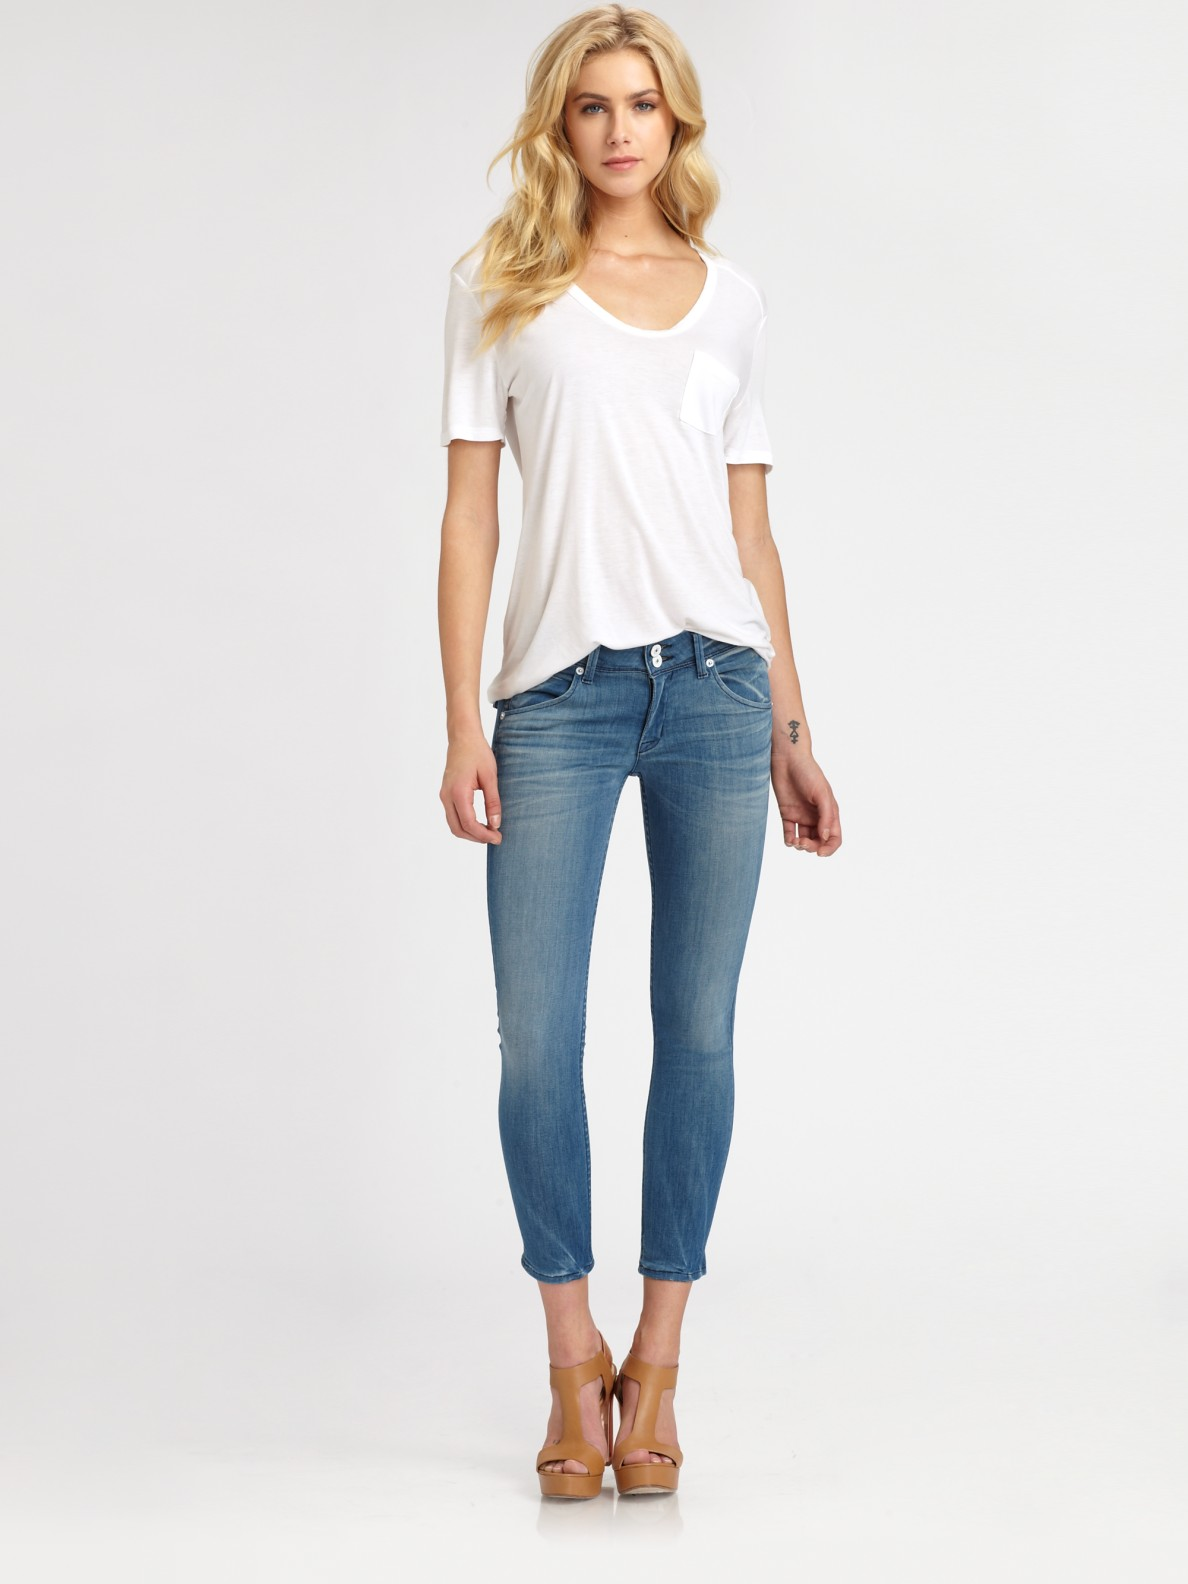 Shop Liverpool Jeans, Chloe Cropped Skinny Jeans at Lord & Taylor. Free shipping on any order over $ In order to use all of the site functionality on the Lord and Taylor website, you must have JavaScript enabled on your browser.